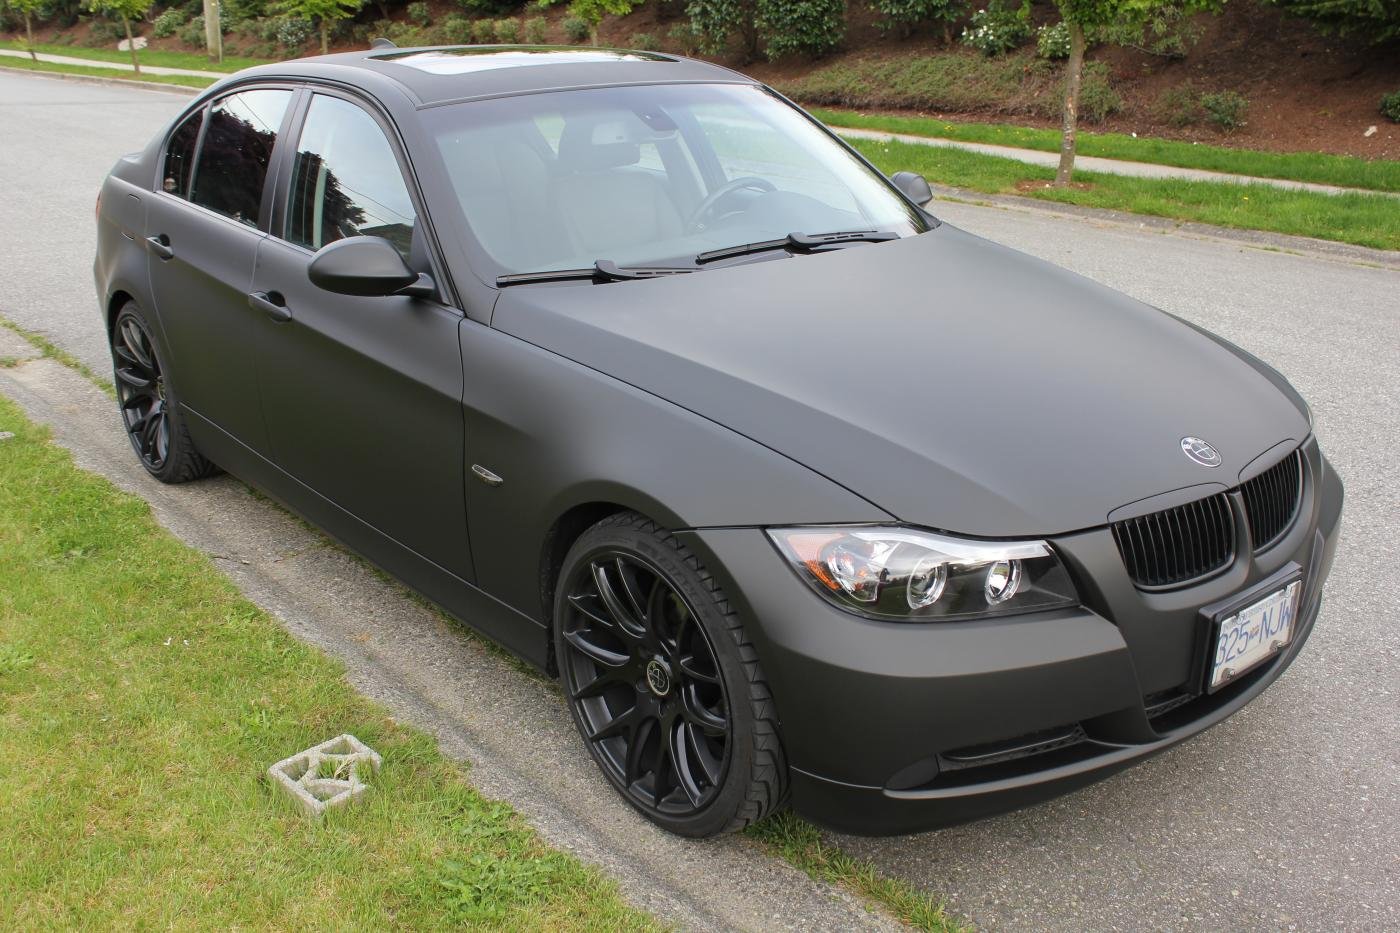 What Do You Consider Murdered Or Blacked Out